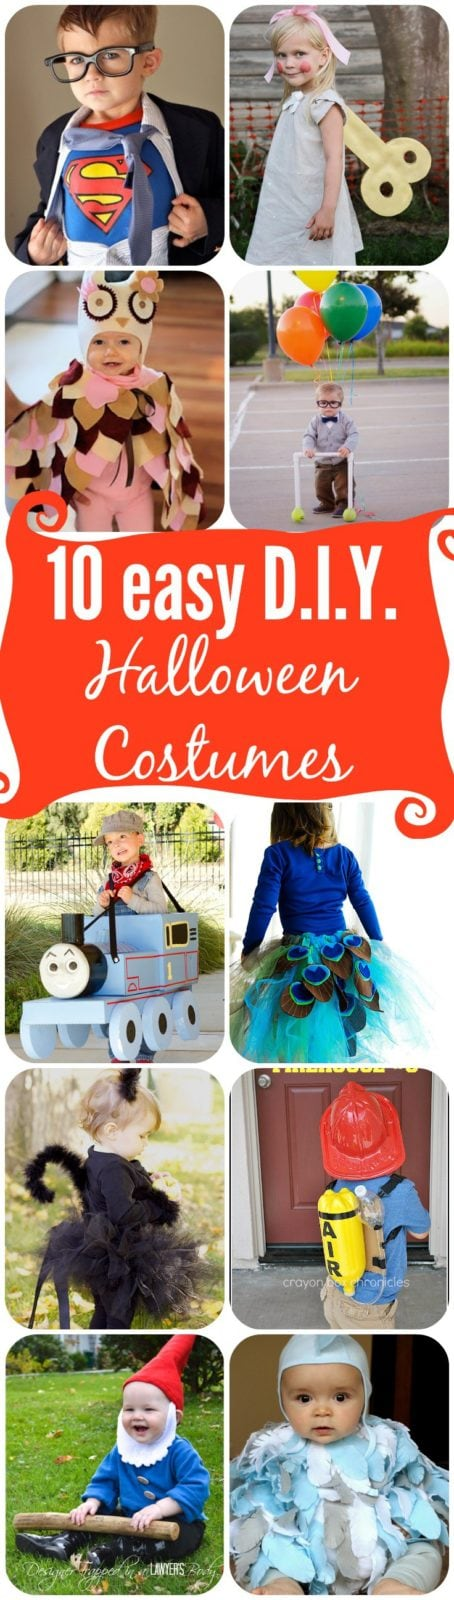 10 adorable diy halloween costumes for toddlers designer trapped 10 adorable diy halloween costumes for toddlers diyhalloween halloweencostumes diyhalloweencostume solutioingenieria Choice Image